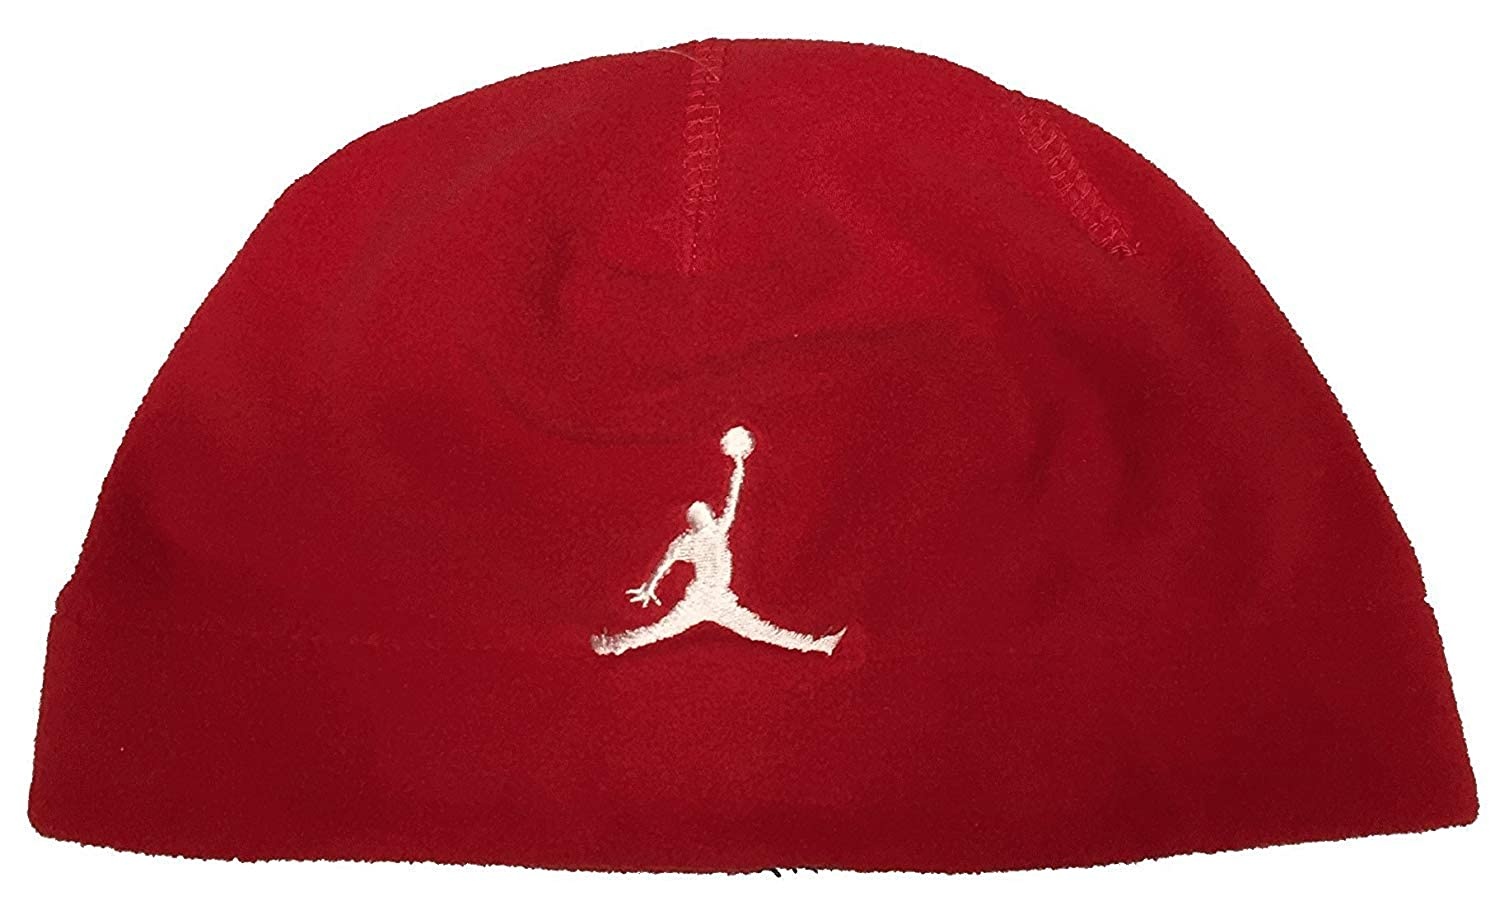 ccc5fdcfb Amazon.com: Red Fleece Jordan Beanie Skullcap with White Jumpman ...